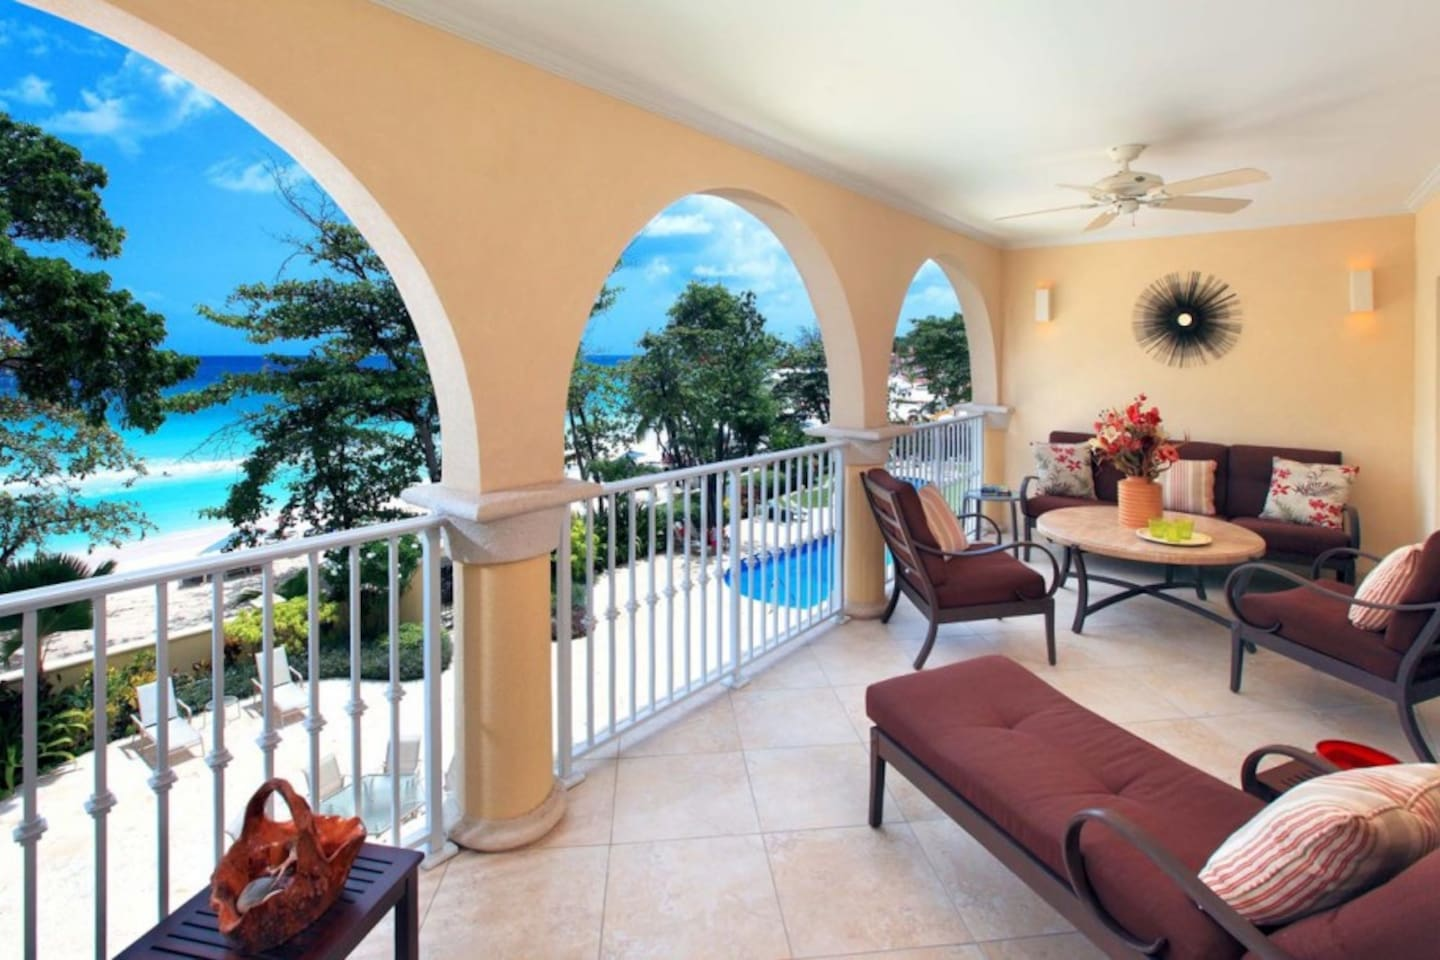 200 sq ft covered terrace overlooks the beach and 2 lagoon-style swimming pools.  ALL RENTAL RATES ARE SUBJECT TO THE BARBADOS GOVERNMENT'S 10% SHARED ECONOMY LEVY.